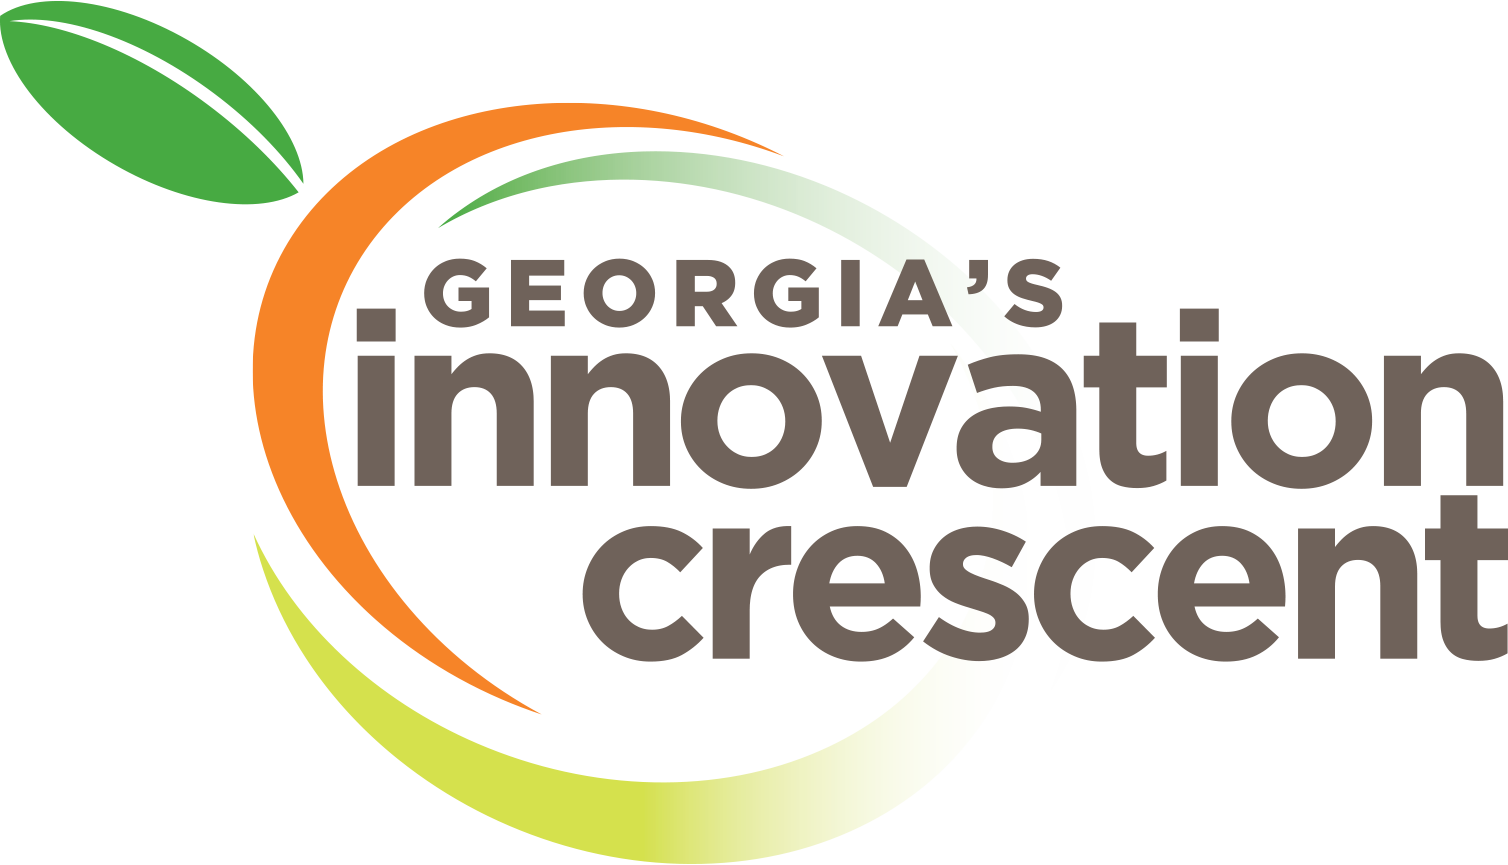 Georgia's Innovation Crescent Regional Partnership